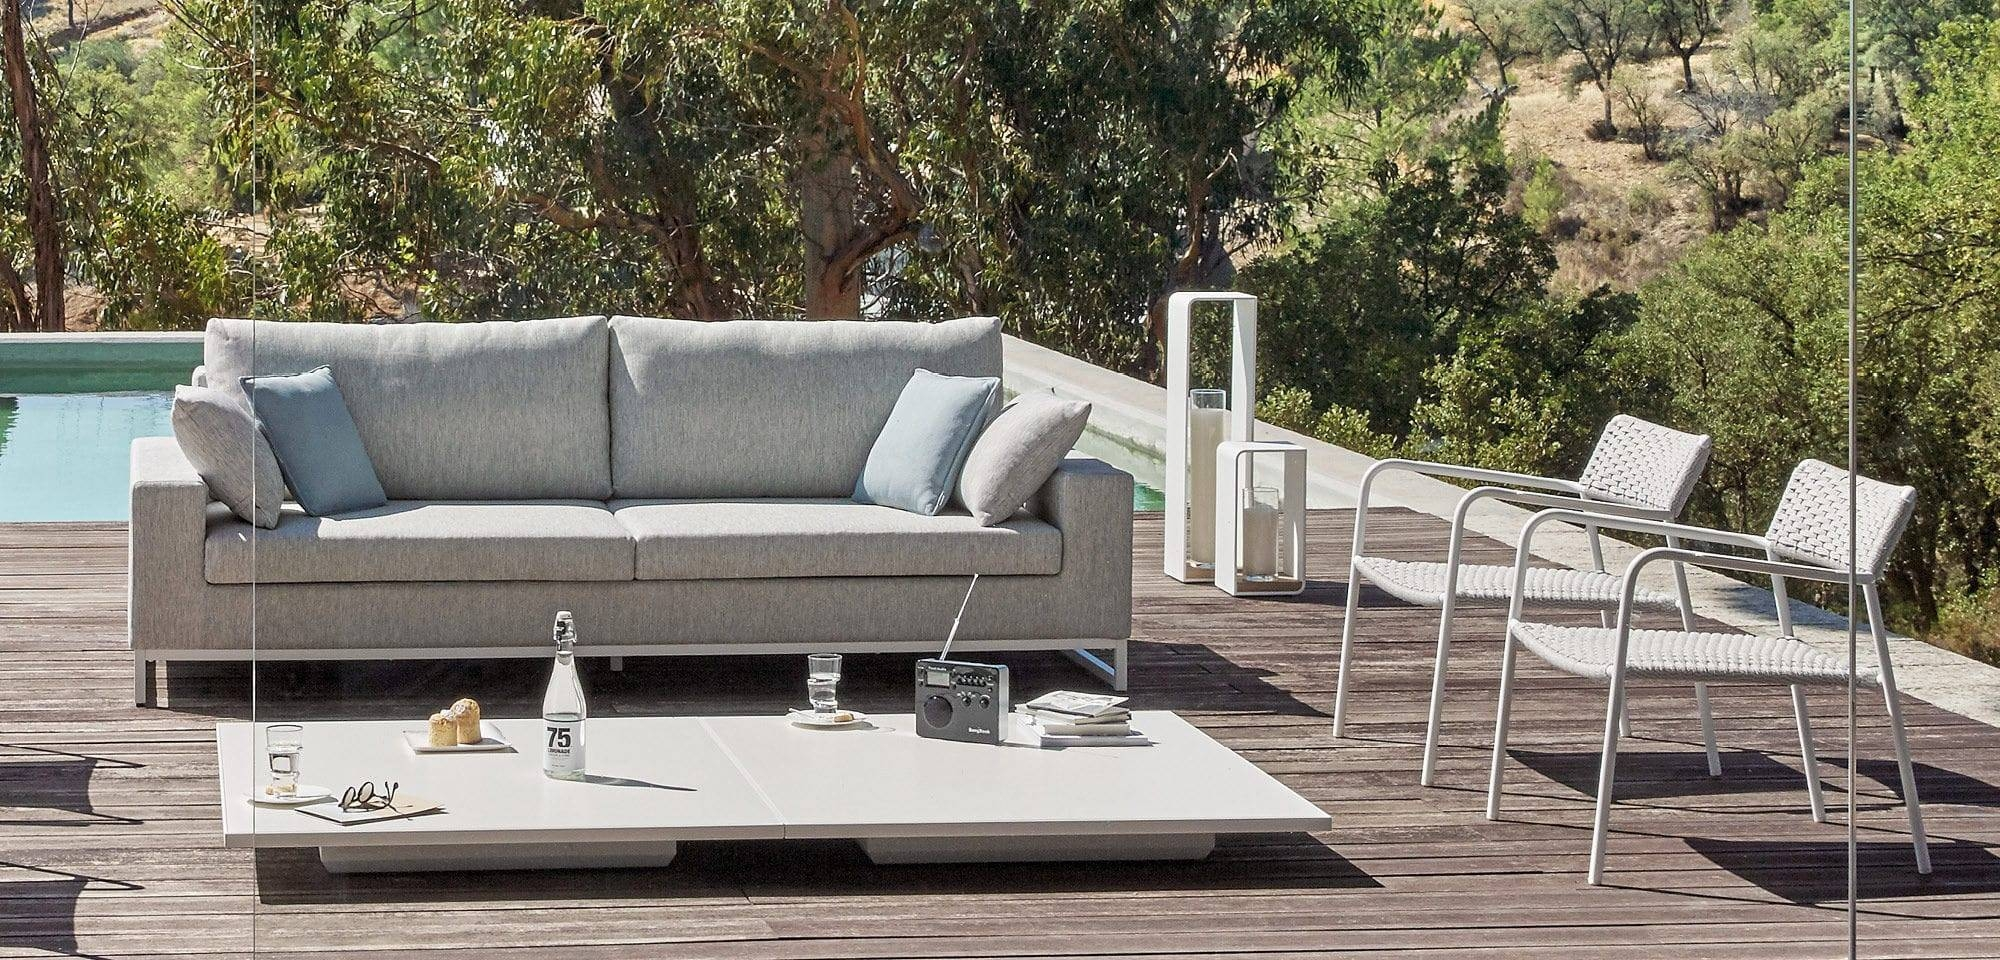 Contemporary Coffee Table / Glass / Aluminum / Hpl - Luna - Manutti within Luna Coffee Tables (Image 10 of 30)